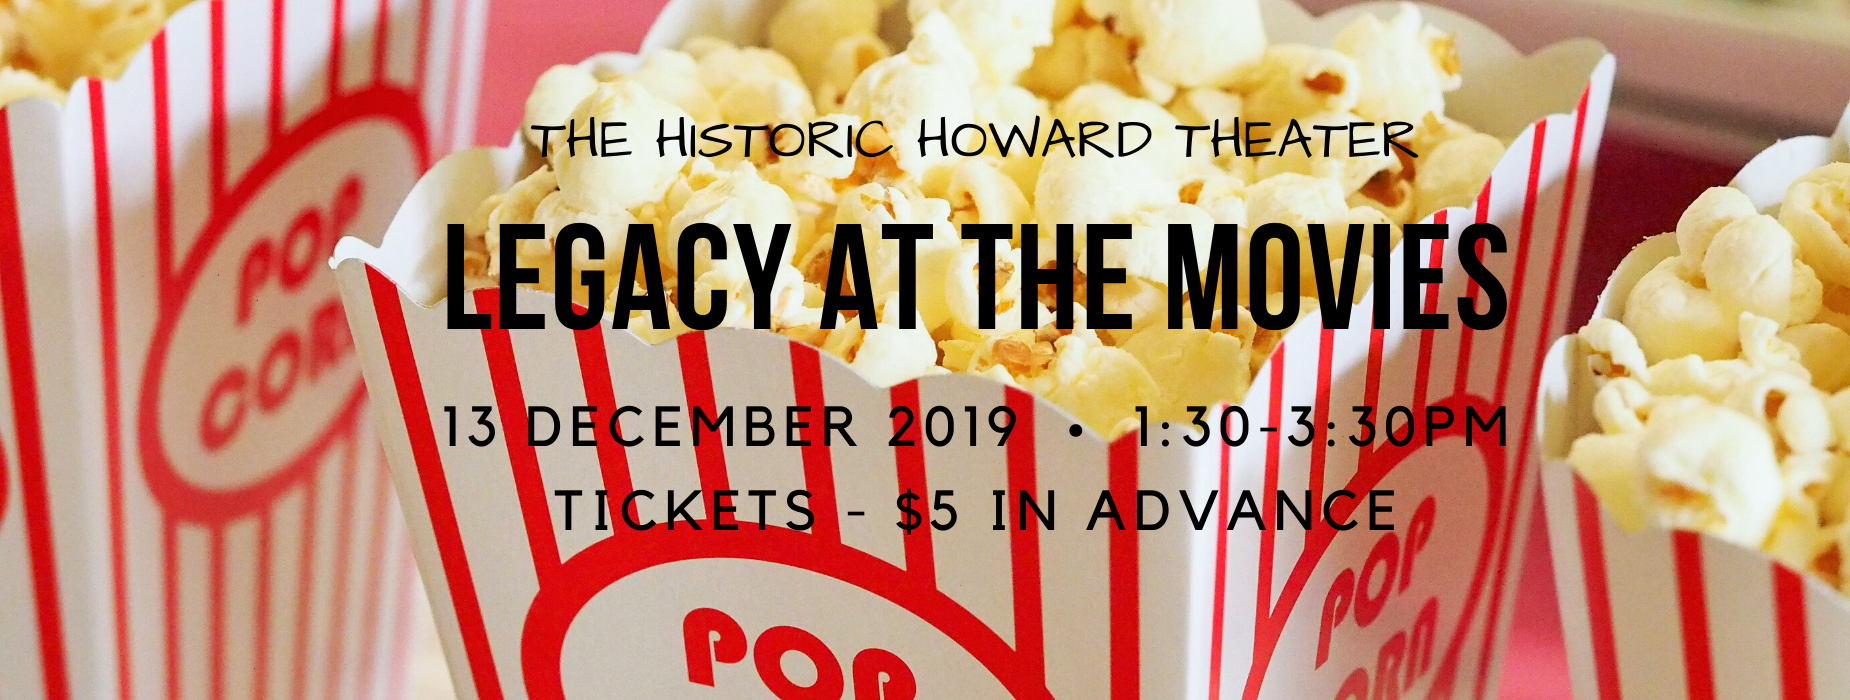 LEGACY AT THE MOVIES -  HISTORIC HOWARD THEATER DECEMBER 13 FROM 1:30-3:30PM.  TICKETS $5 IN ADVANCE